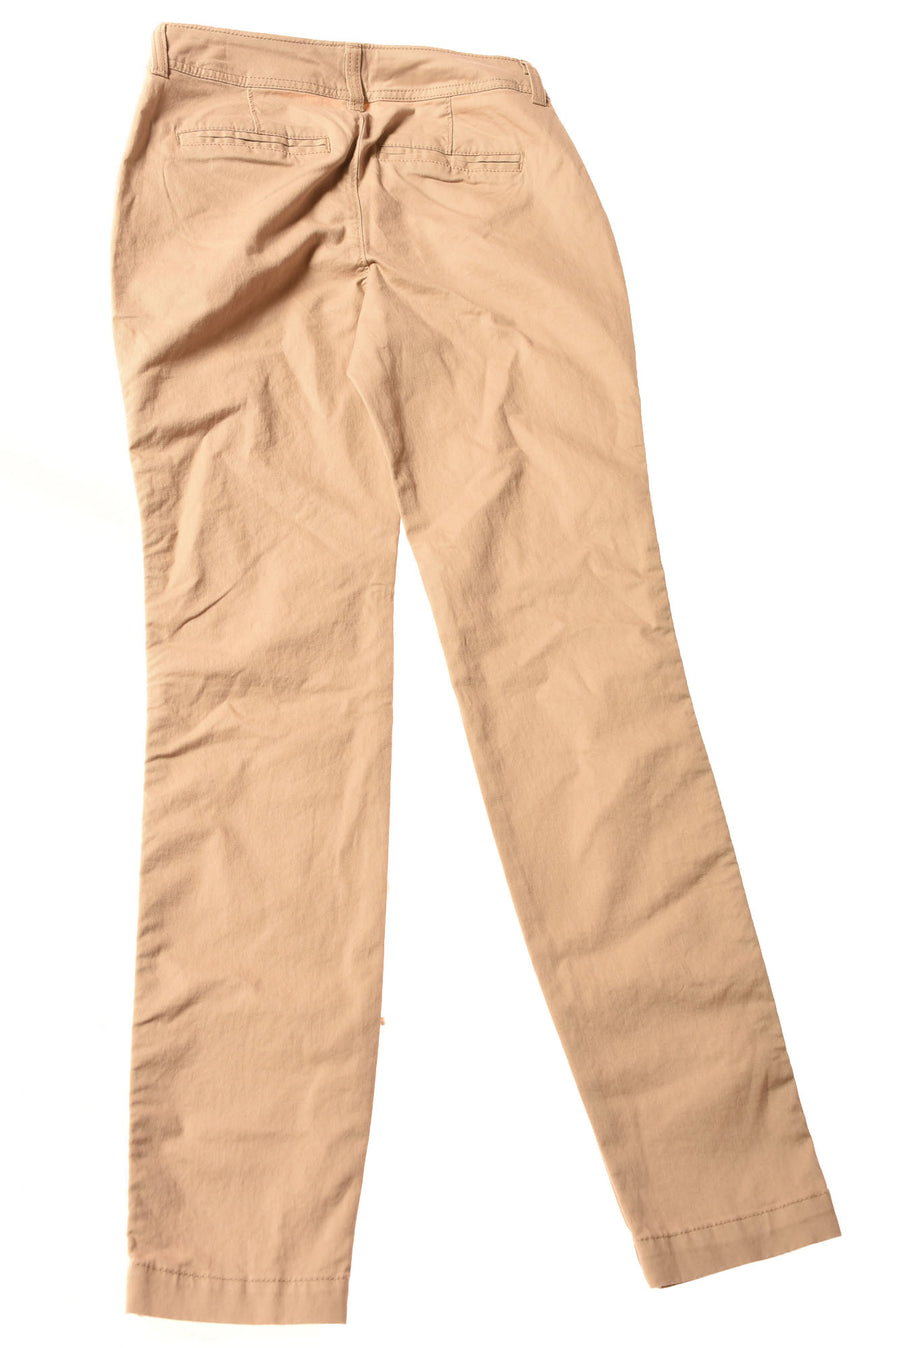 NEW Old Navy Women's Jeans 0 Tan